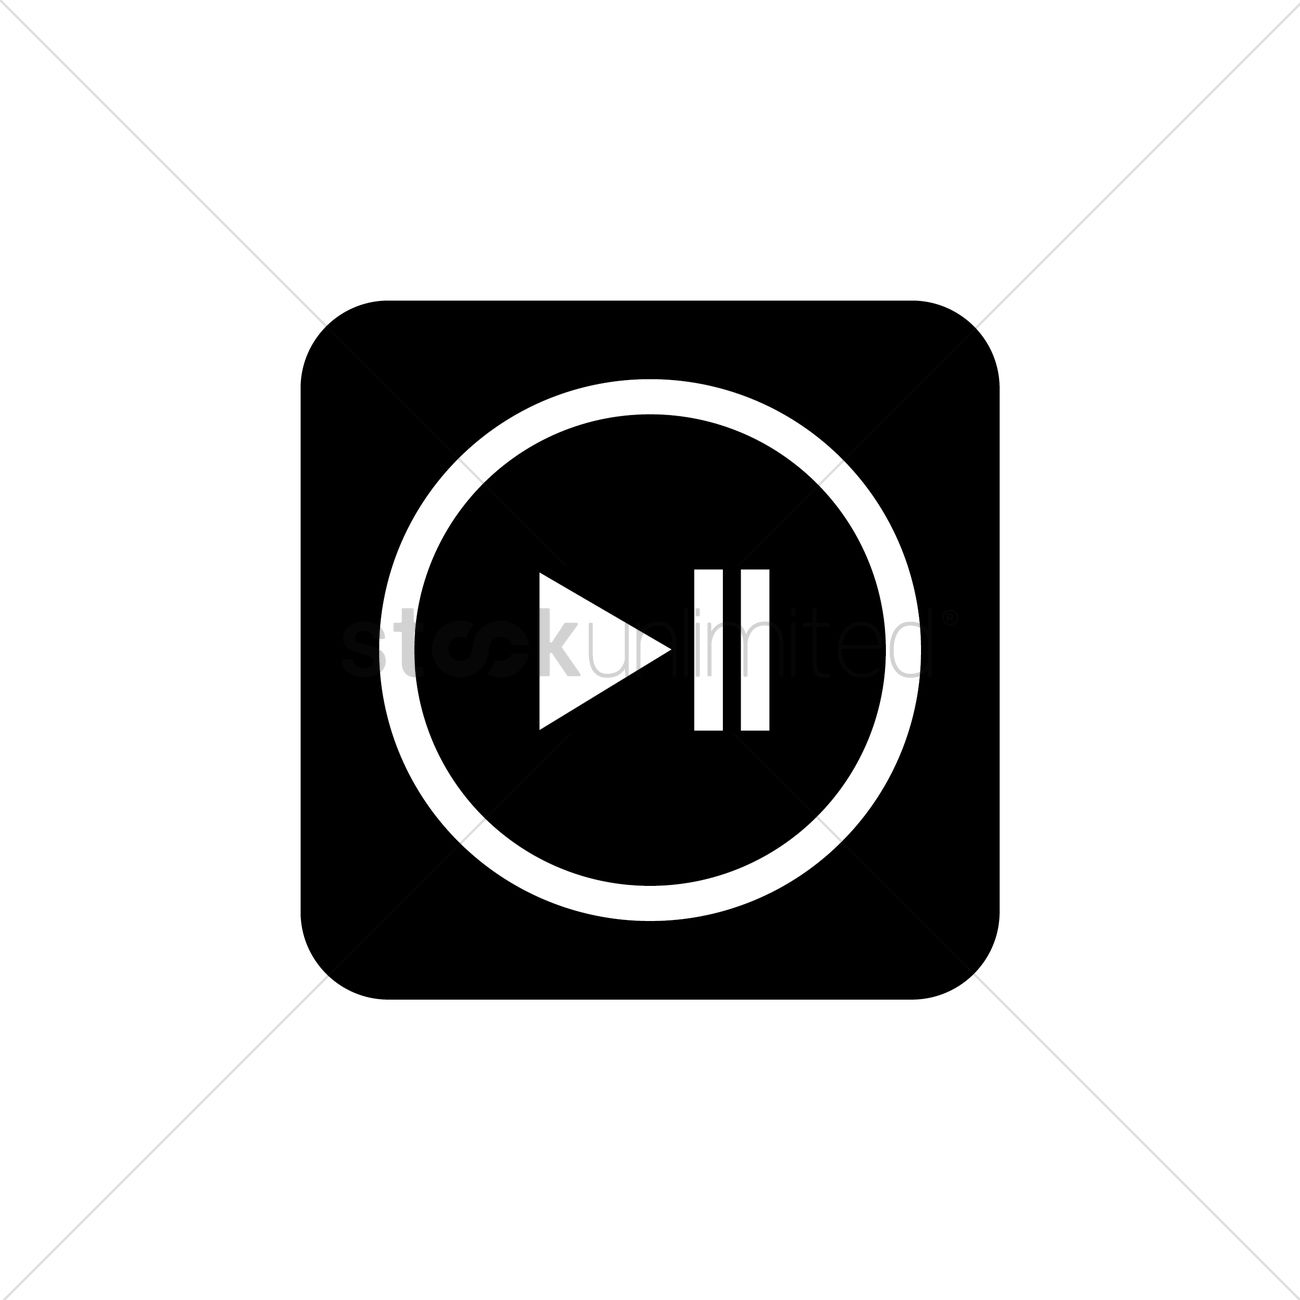 media play pause button vector graphic-media play pause button vector graphic-18